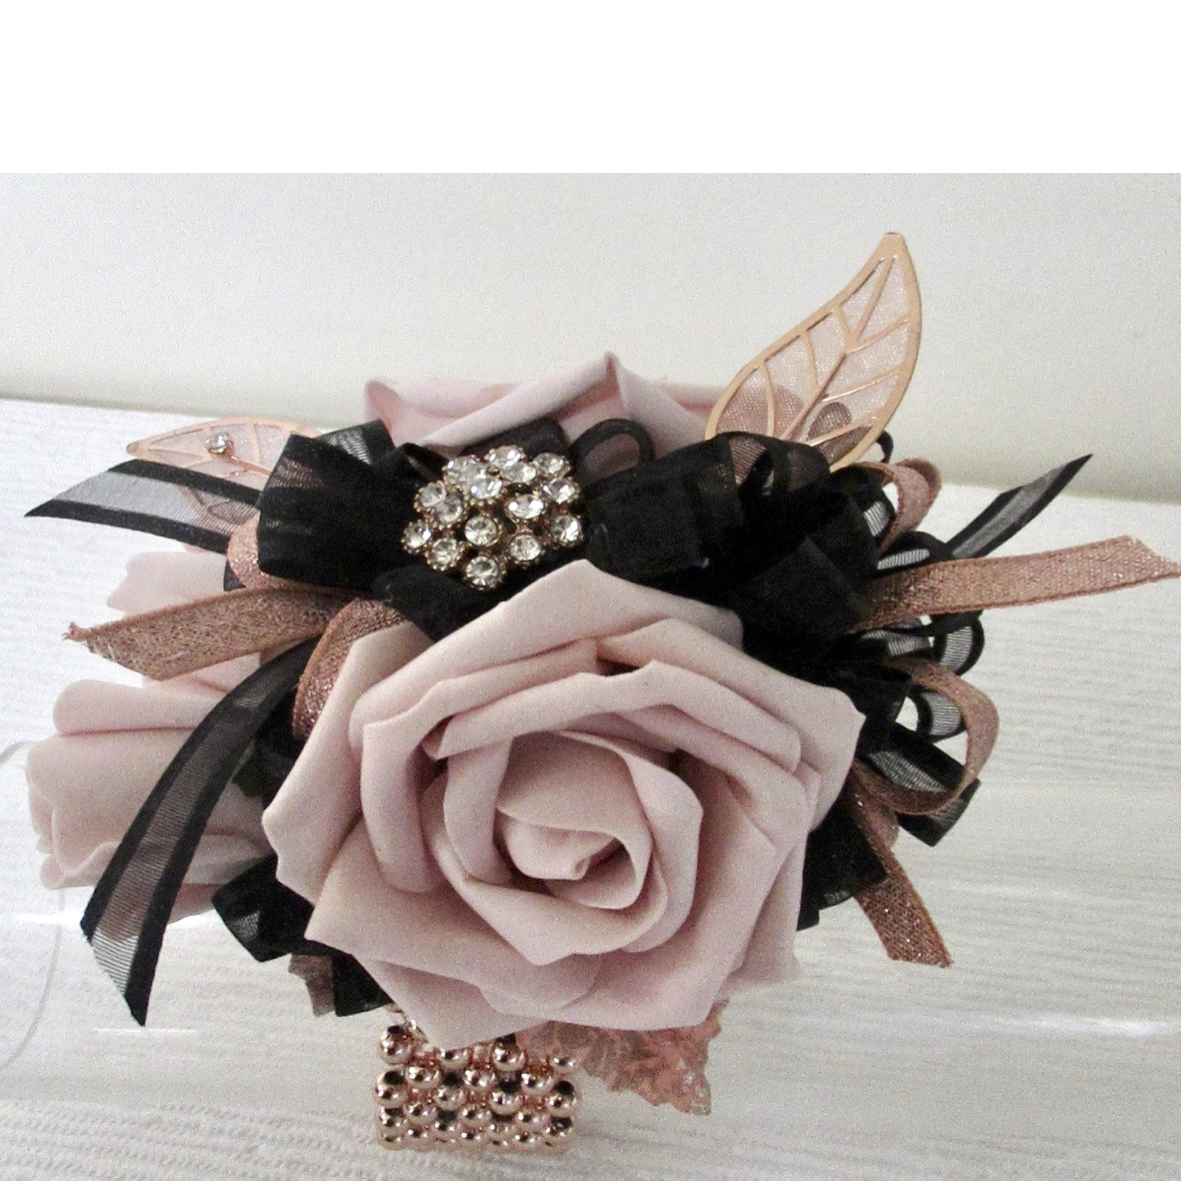 Blush & Black Wrist Corsage with Rose Gold Embellishments